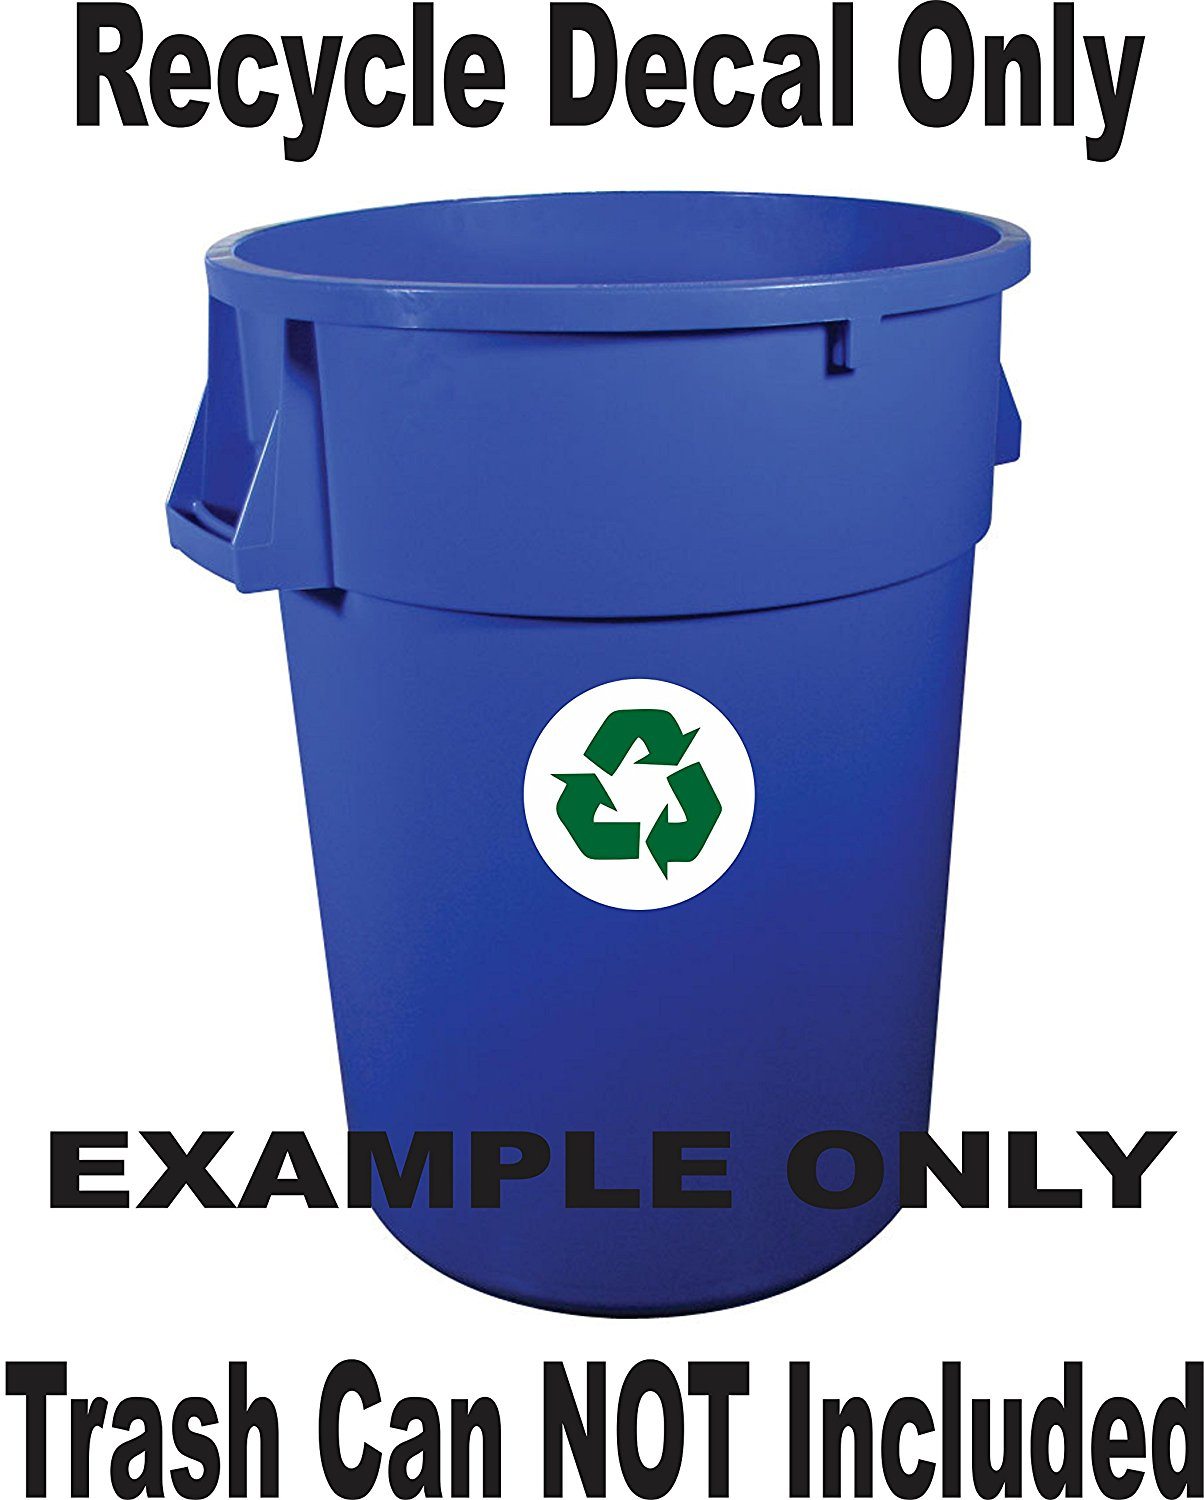 Recycle Symbol Round with Recycle Overlay Decal Sticker Trash Cans Recycle Bins Recycle Containers (5 Inches Round, Green Over White)